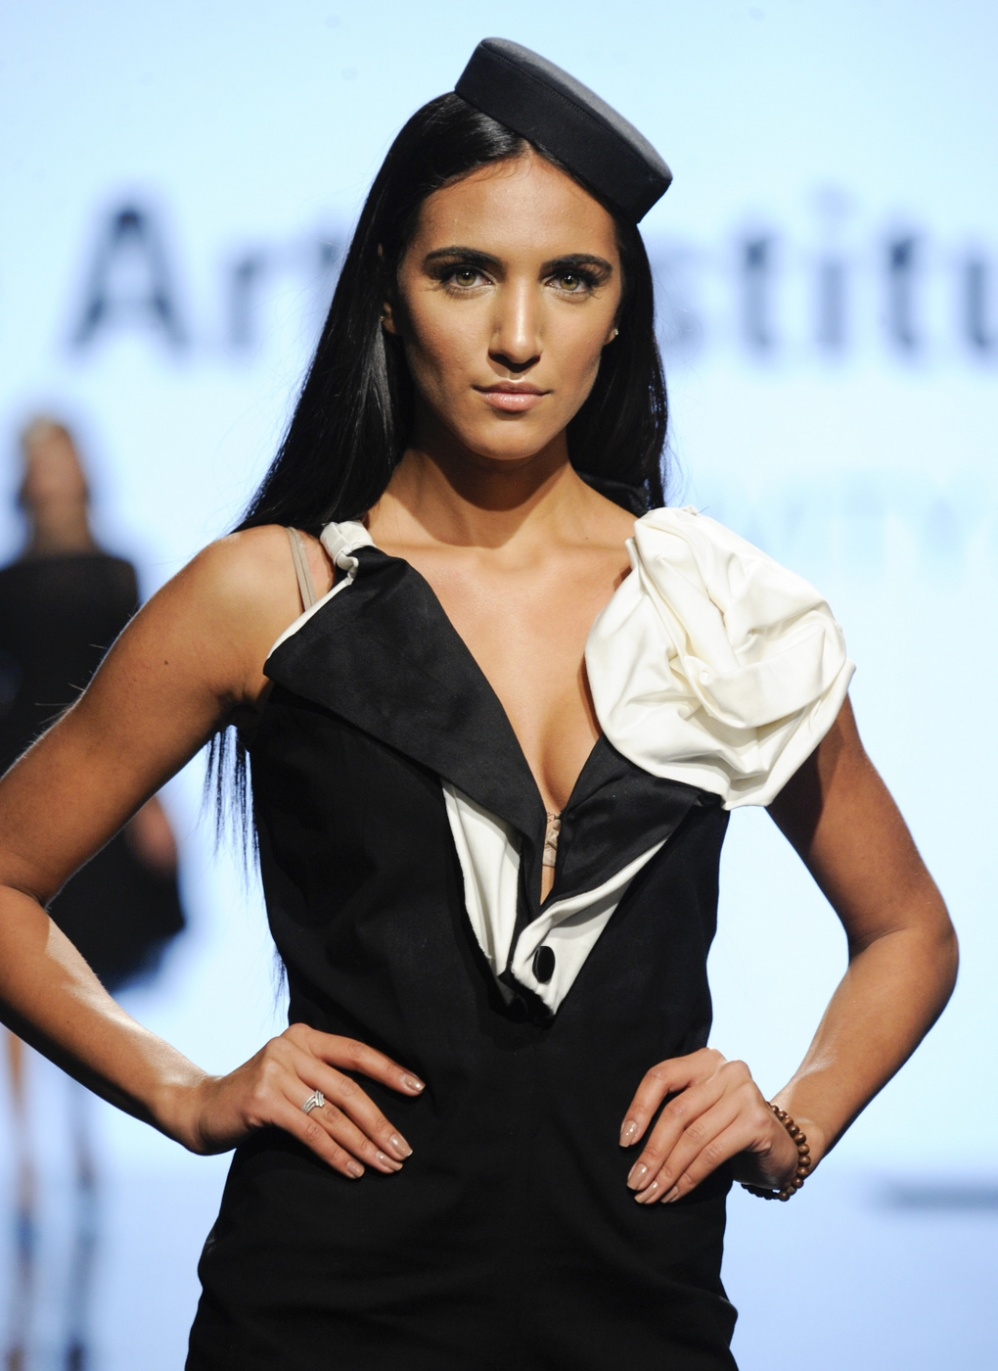 LOS ANGELES, CA - OCTOBER 12: A model walks the runway wearing Rosee Matos at Art Hearts Fashion Los Angeles Fashion The Art Institutes Showcase on October 12, 2016 in Los Angeles, California. (Photo by Arun Nevader/Getty Images for Art Hearts Fashion)